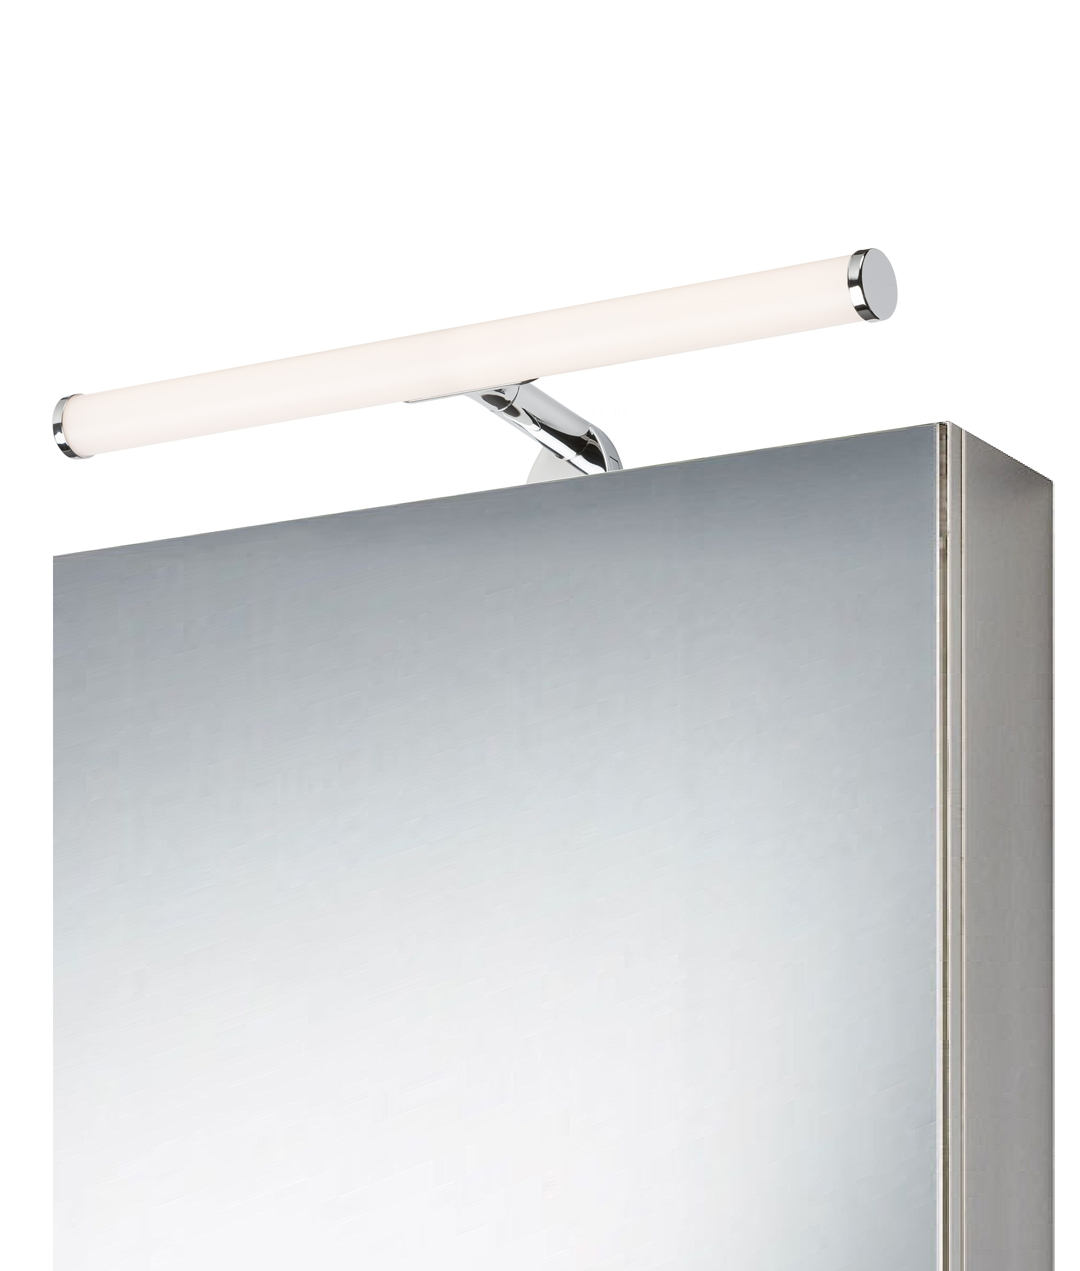 retro fit led light for bathroom cabinets